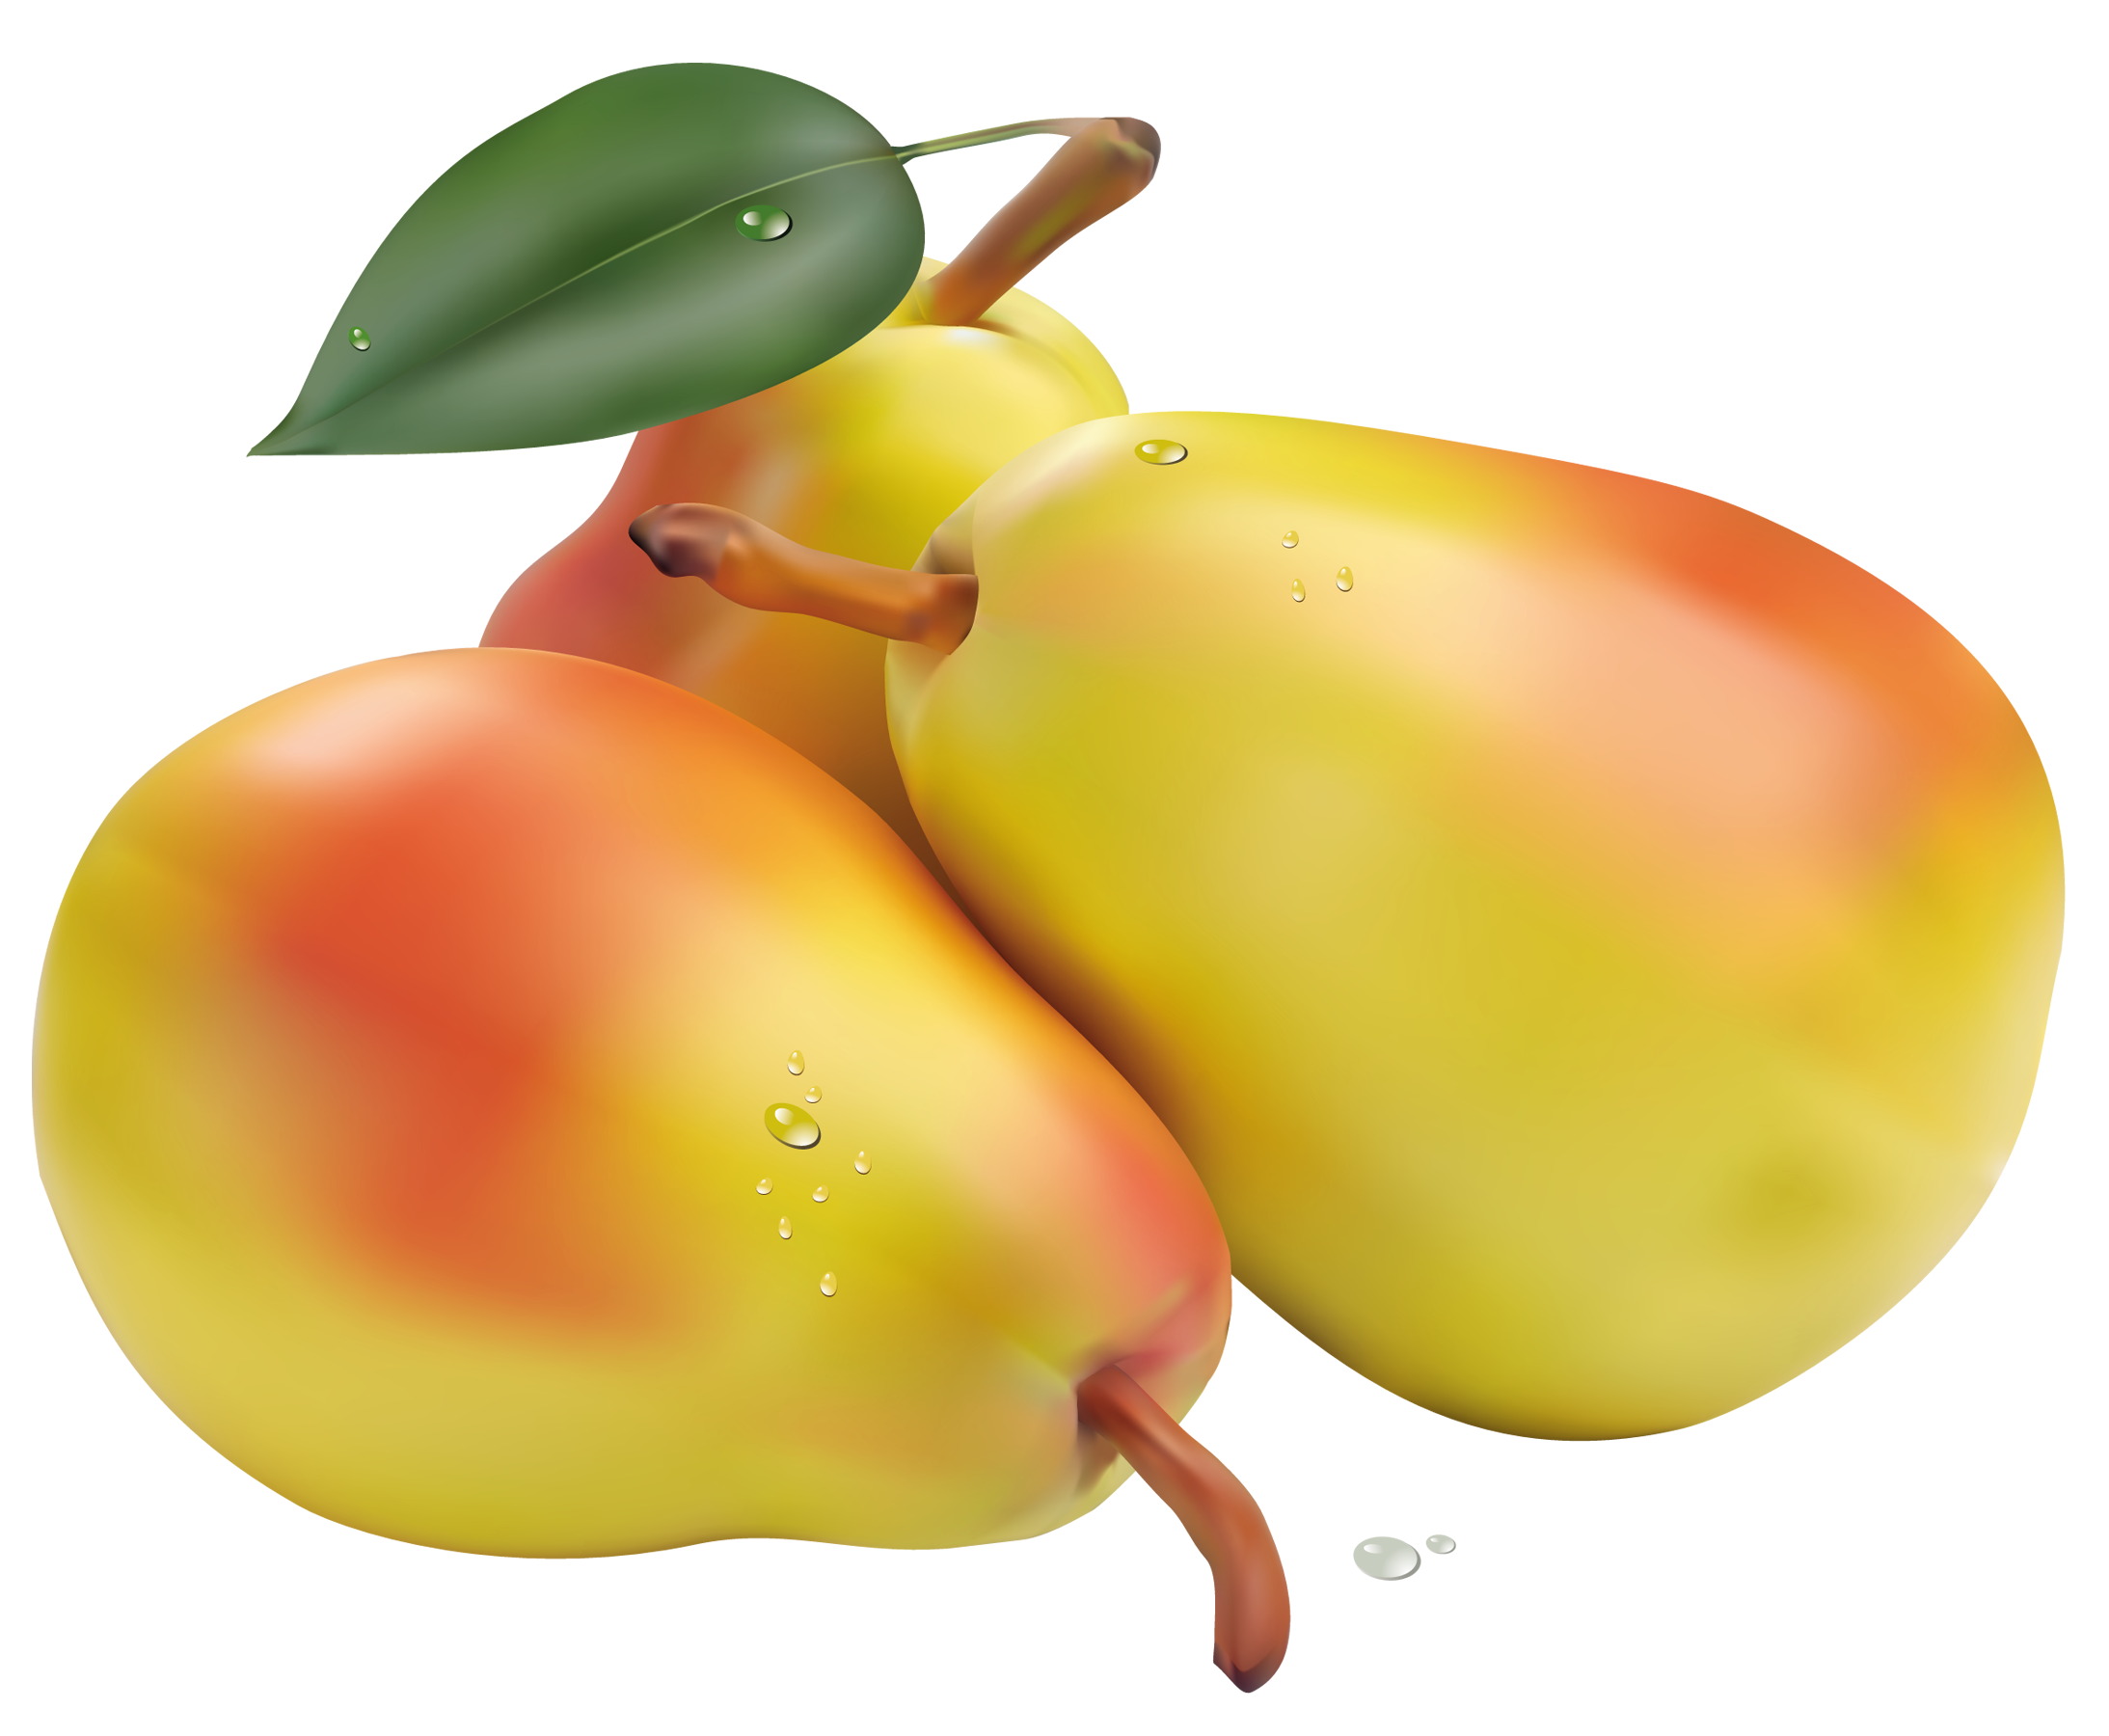 Pear clipart different kind fruit. Pears png picture gallery